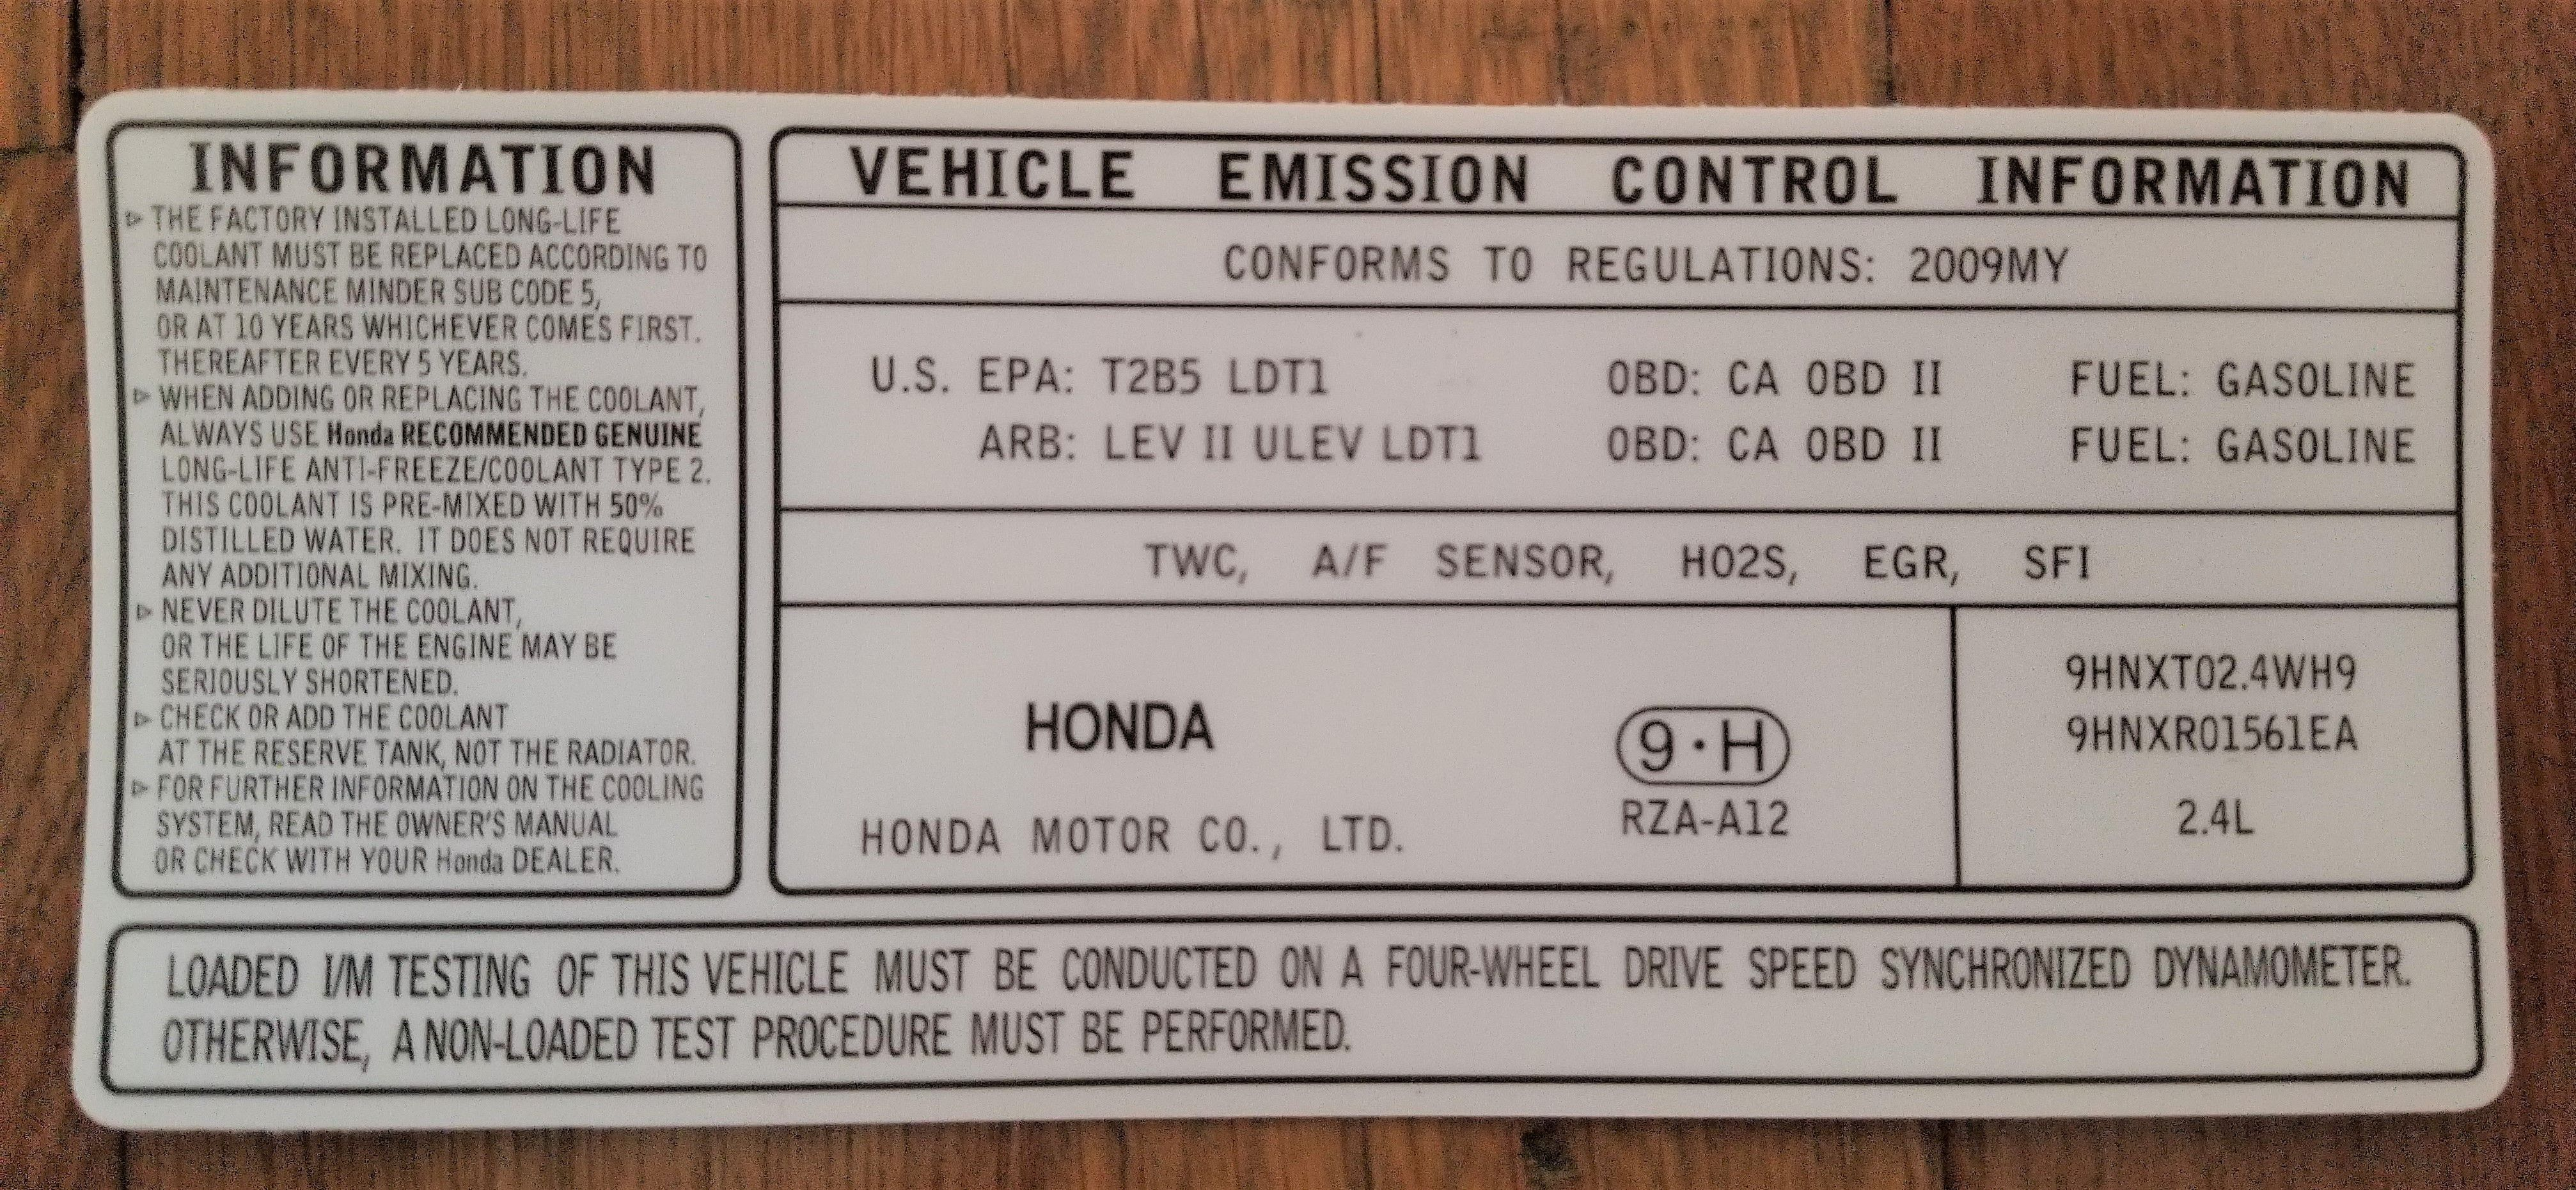 Vehicle Emission Control Information Emissions Honda Obd